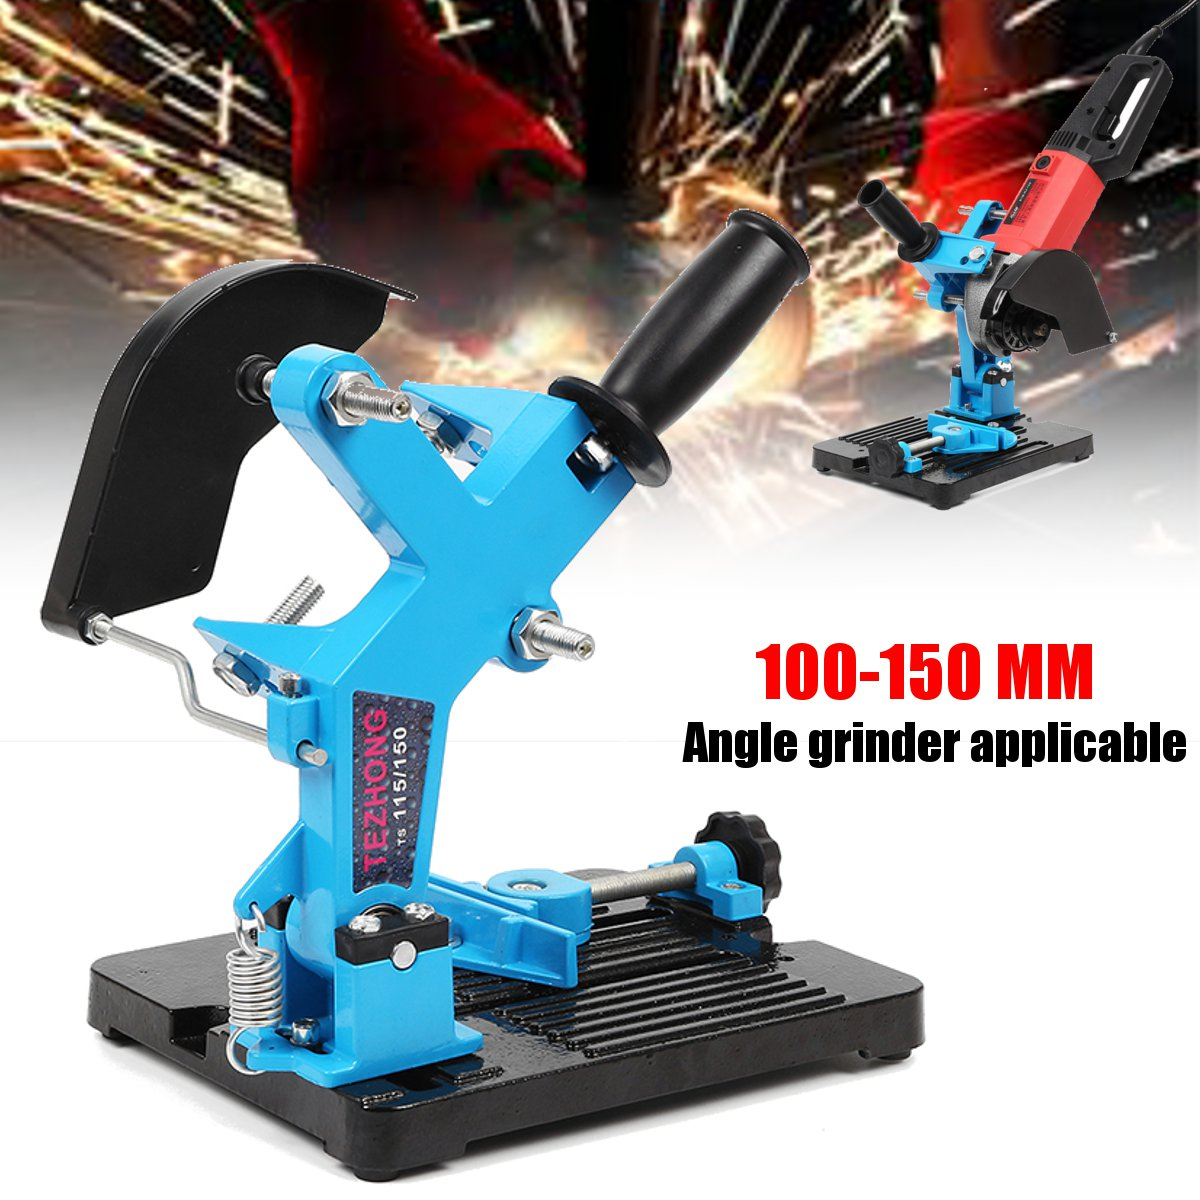 Angle Grinder Stand Angle Grinder Bracket Holder Support For 115 150 Cutter Angle Grinder Cast Iron Base Power Tool Accessory